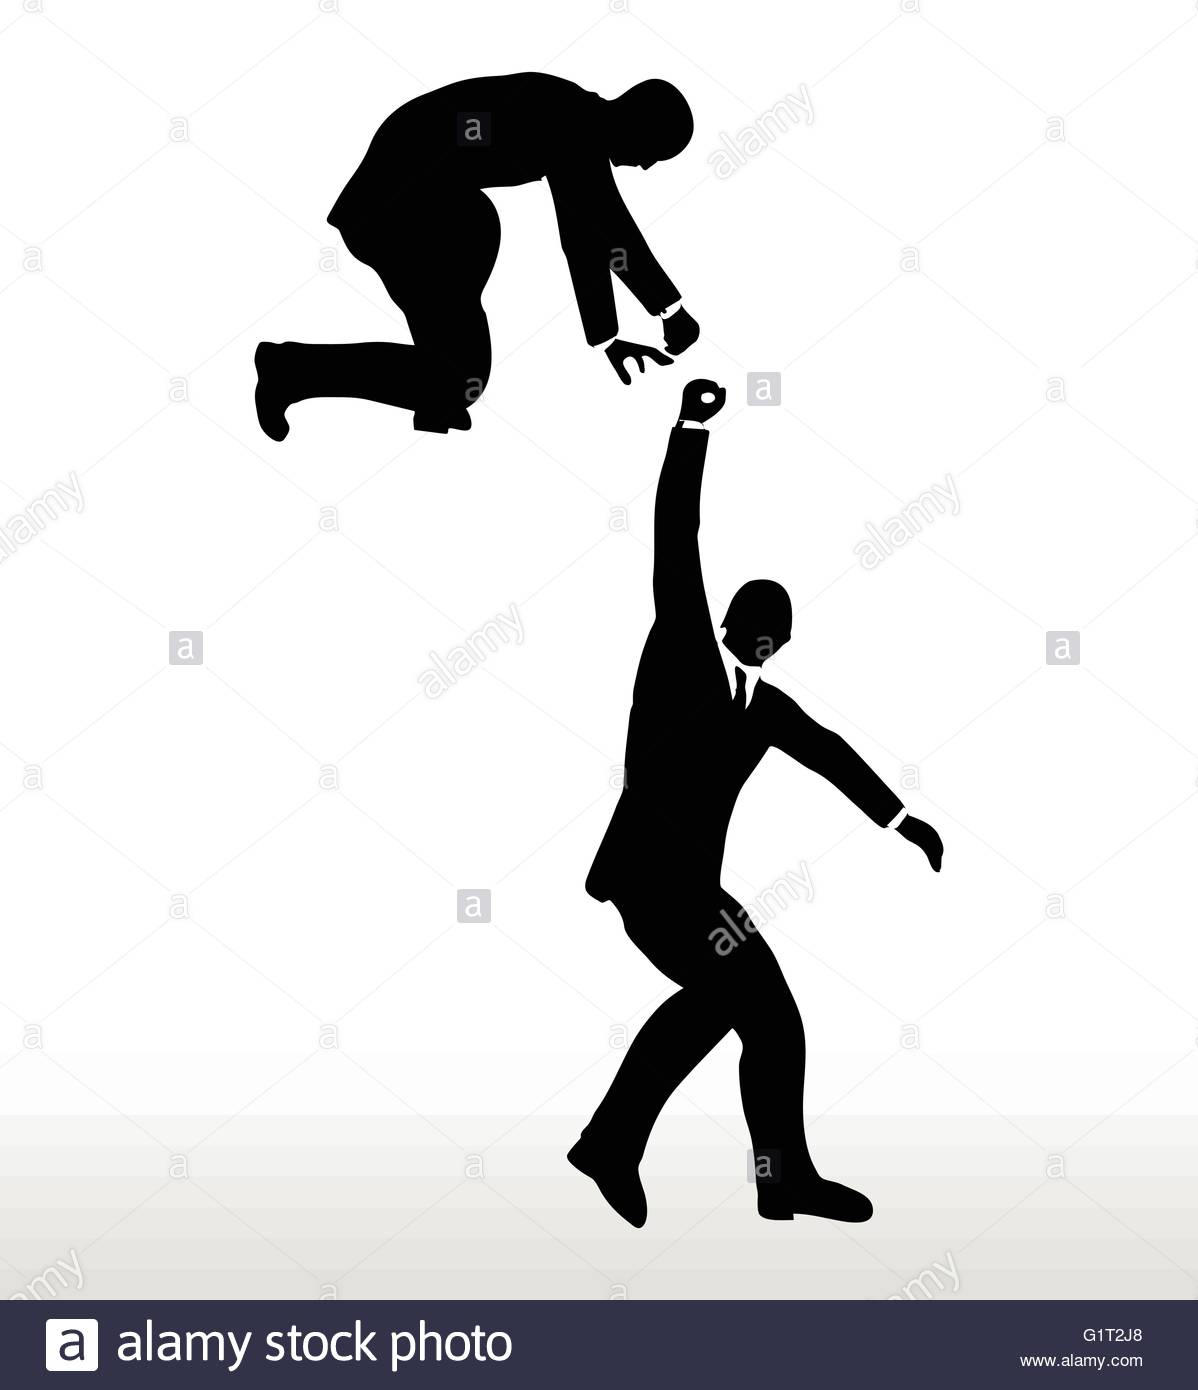 1198x1390 Silhouette Of Two Businessmen Team Holding On With A Helping Hand